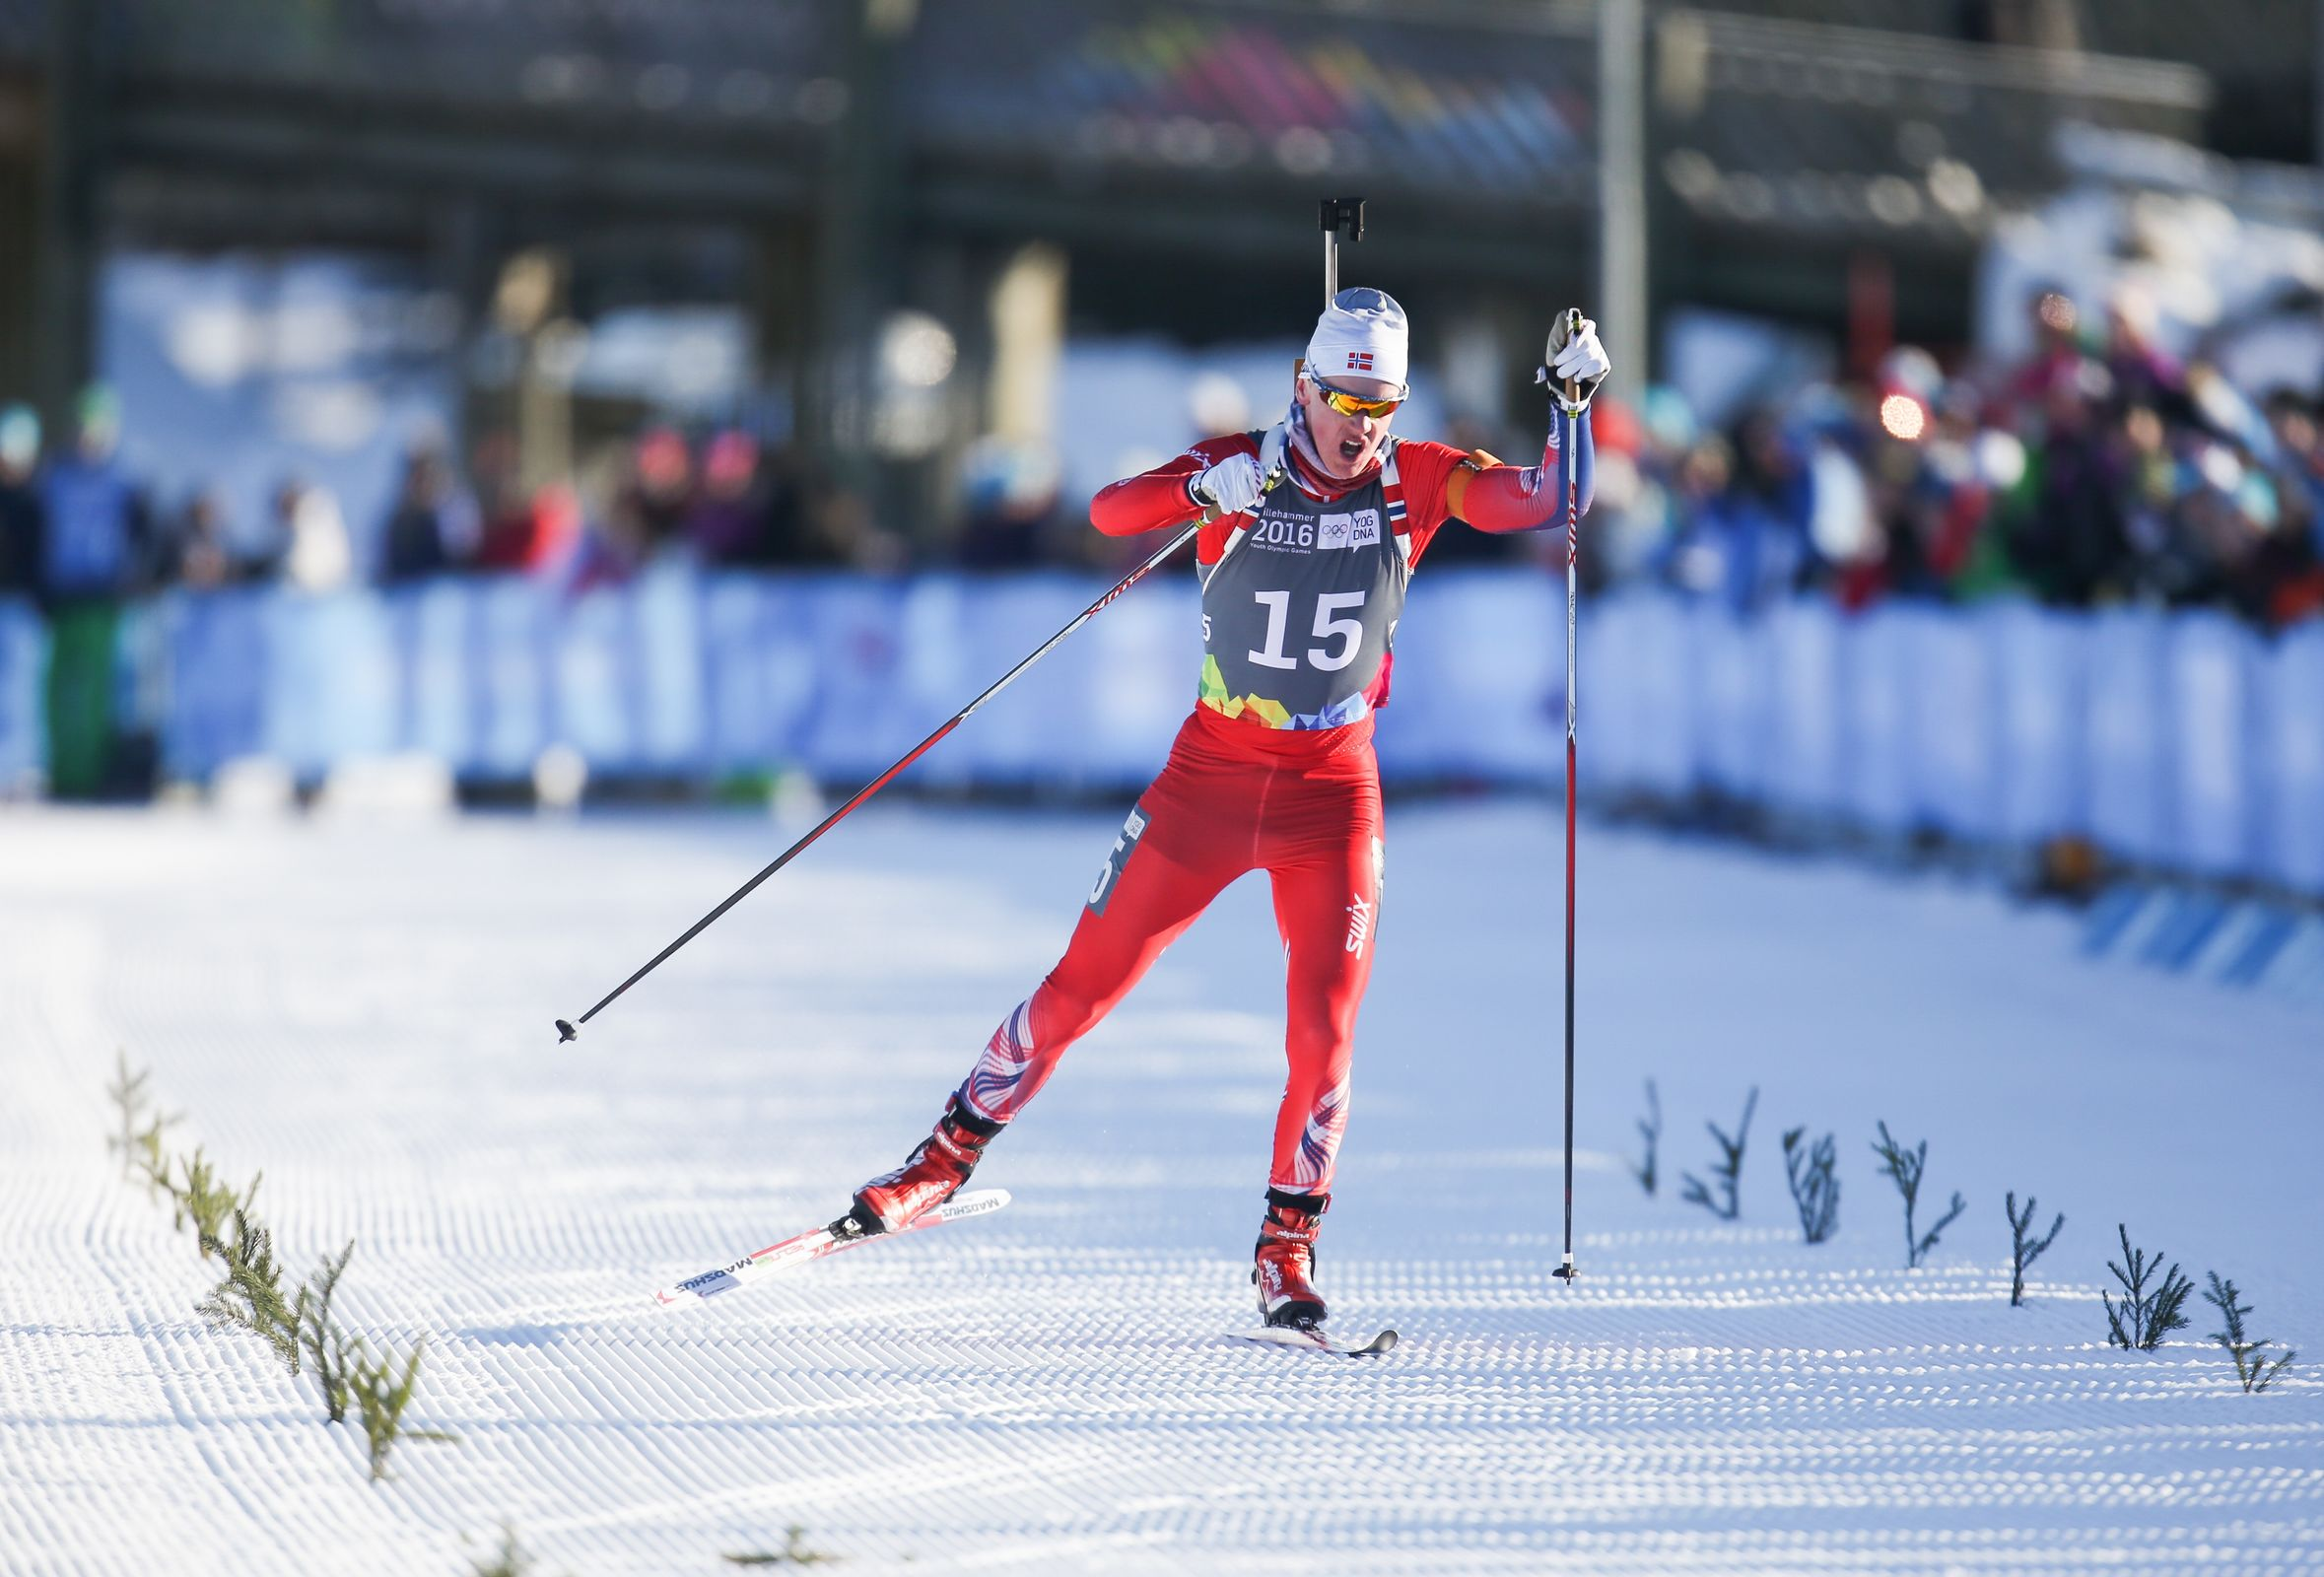 Biathlon Men's 7.5km Sprint